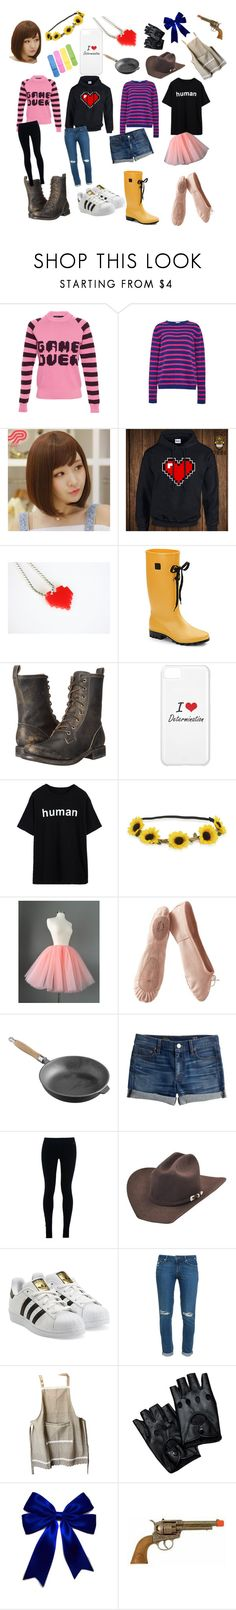 """""""Undertale: Frisk"""" by cartoonvillian ❤ liked on Polyvore featuring American Retro, Stella Jean, Pin Show, Däv, Frye, Aéropostale, Porselli, Viners, J.Crew and NIKE"""